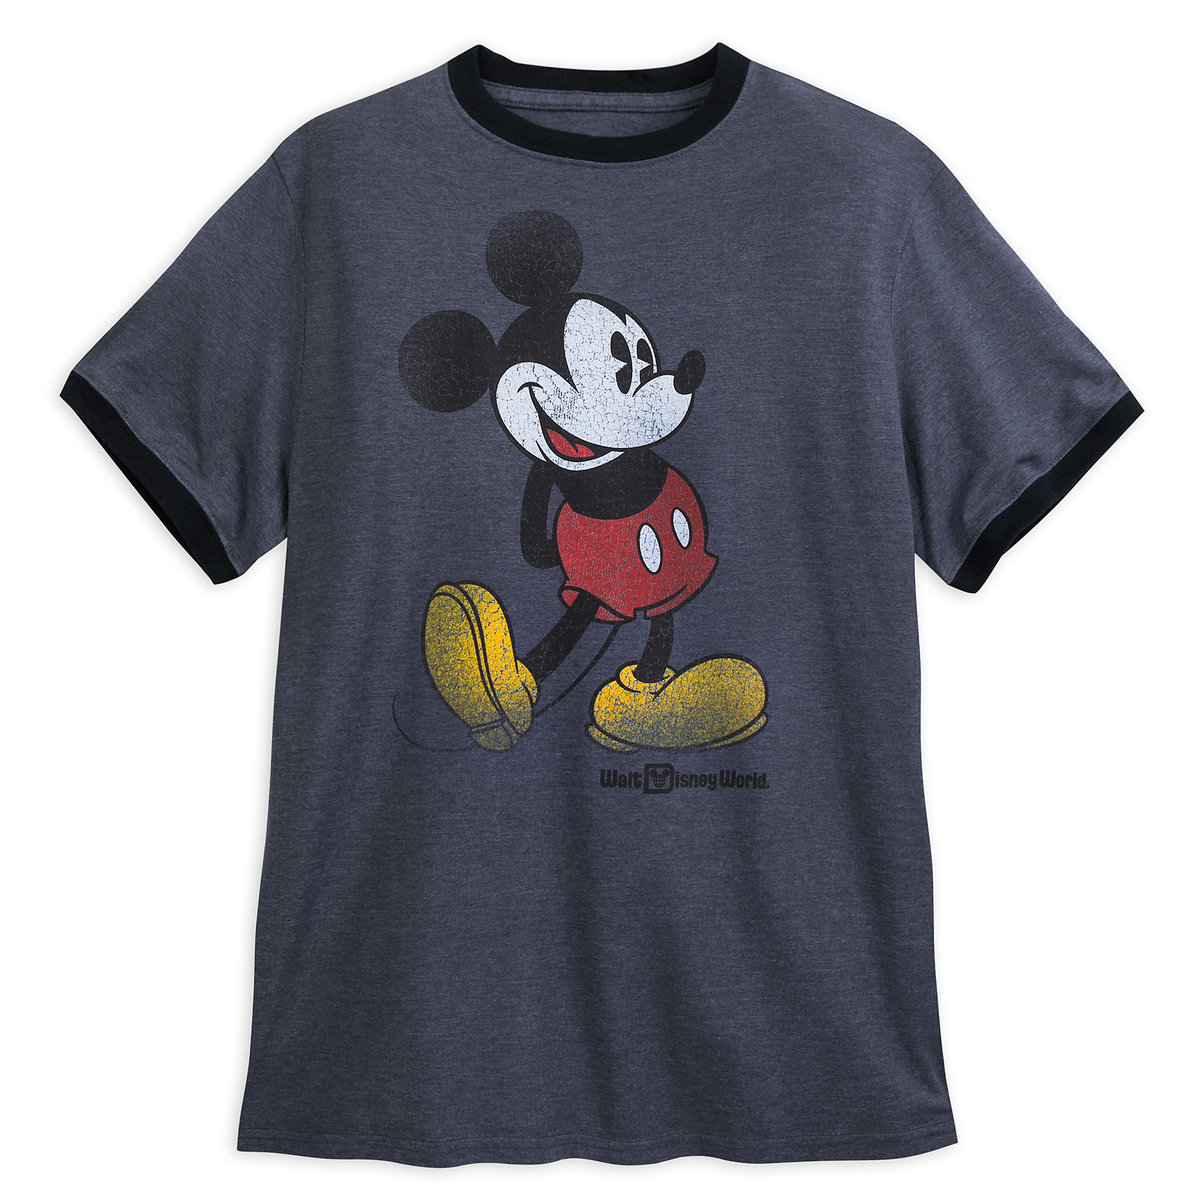 83848f9c Product Image of Mickey Mouse Classic Ringer T-Shirt for Adults - Walt Disney  World